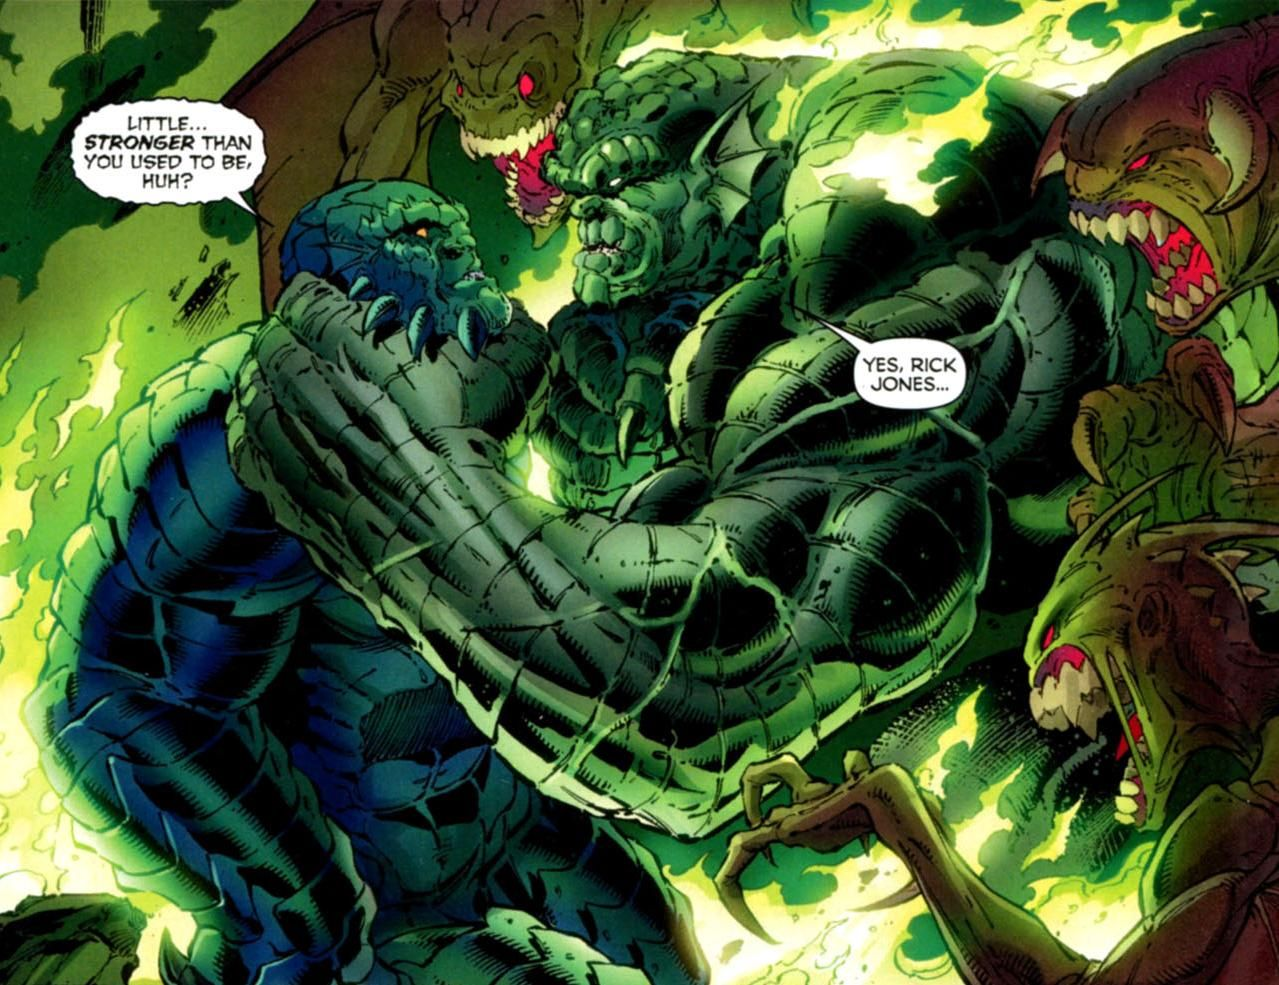 A Bomb Vs Abomination Abomination scr...